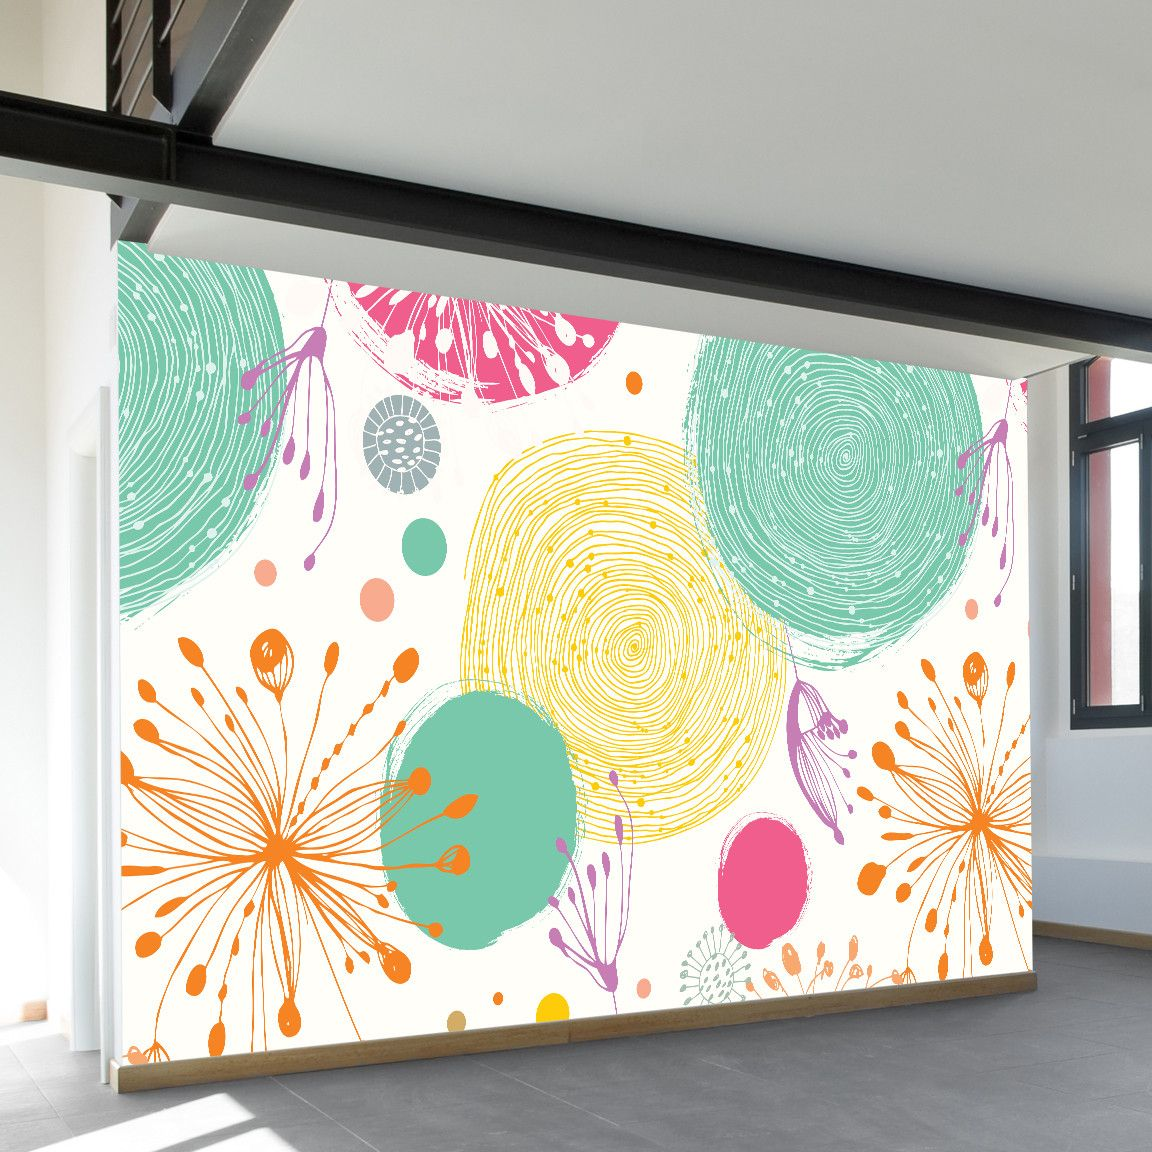 In the Spring Air Wall Mural   Spring air, Wall murals and Walls